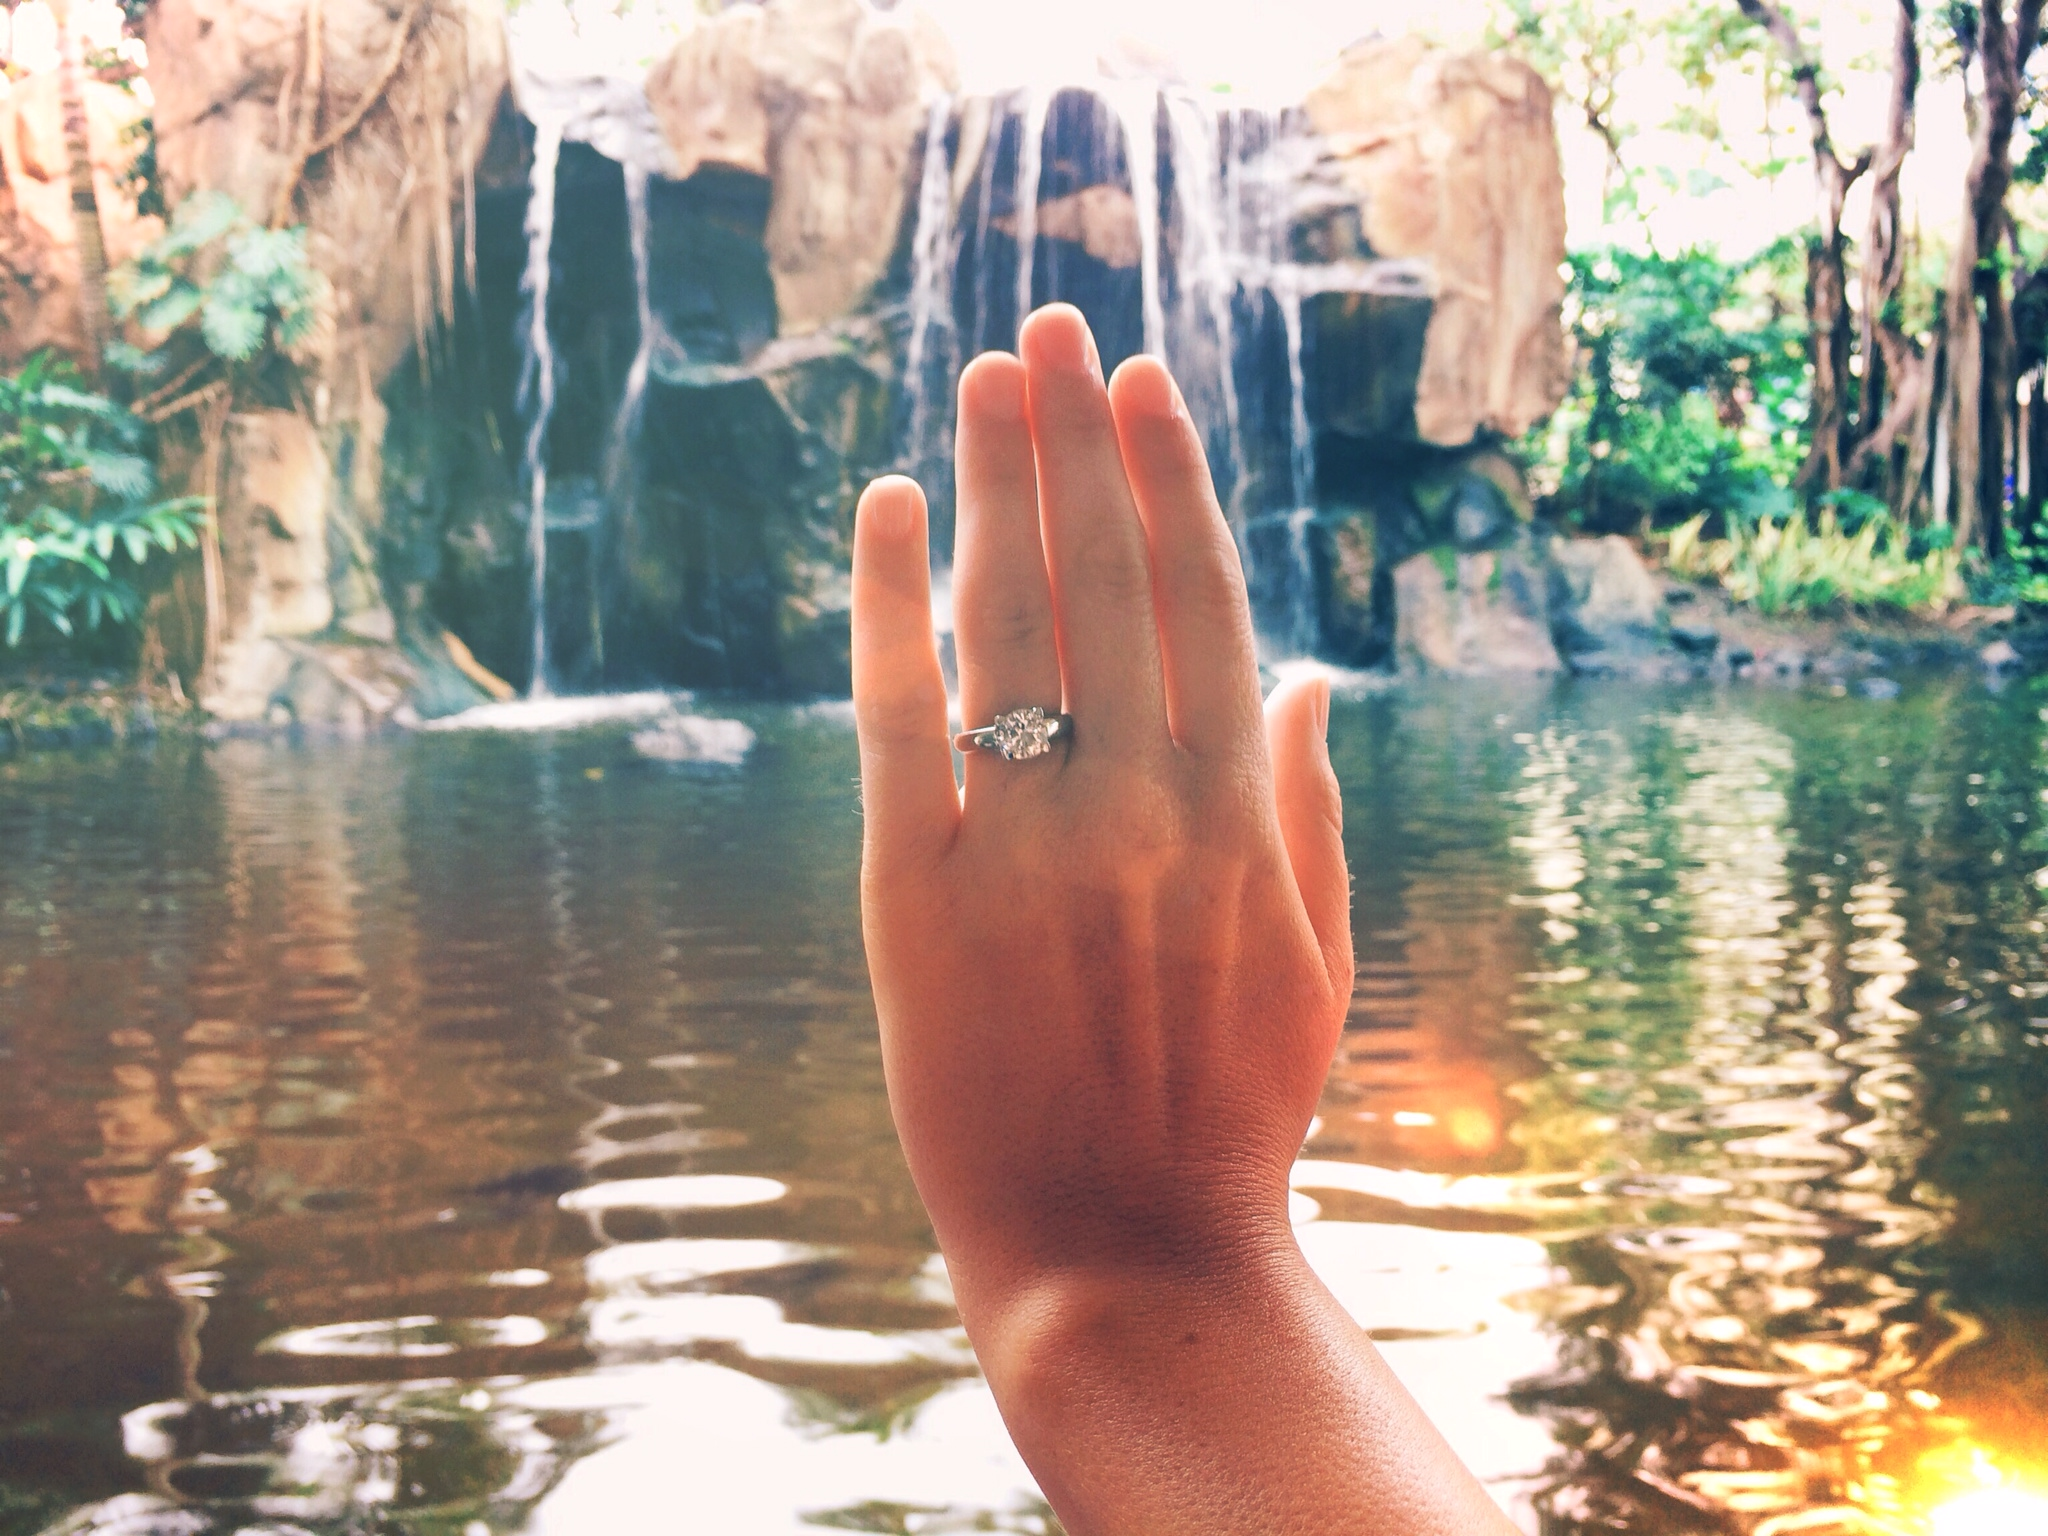 Image 4 of Gorgeous Surprise Proposal in Hawaii